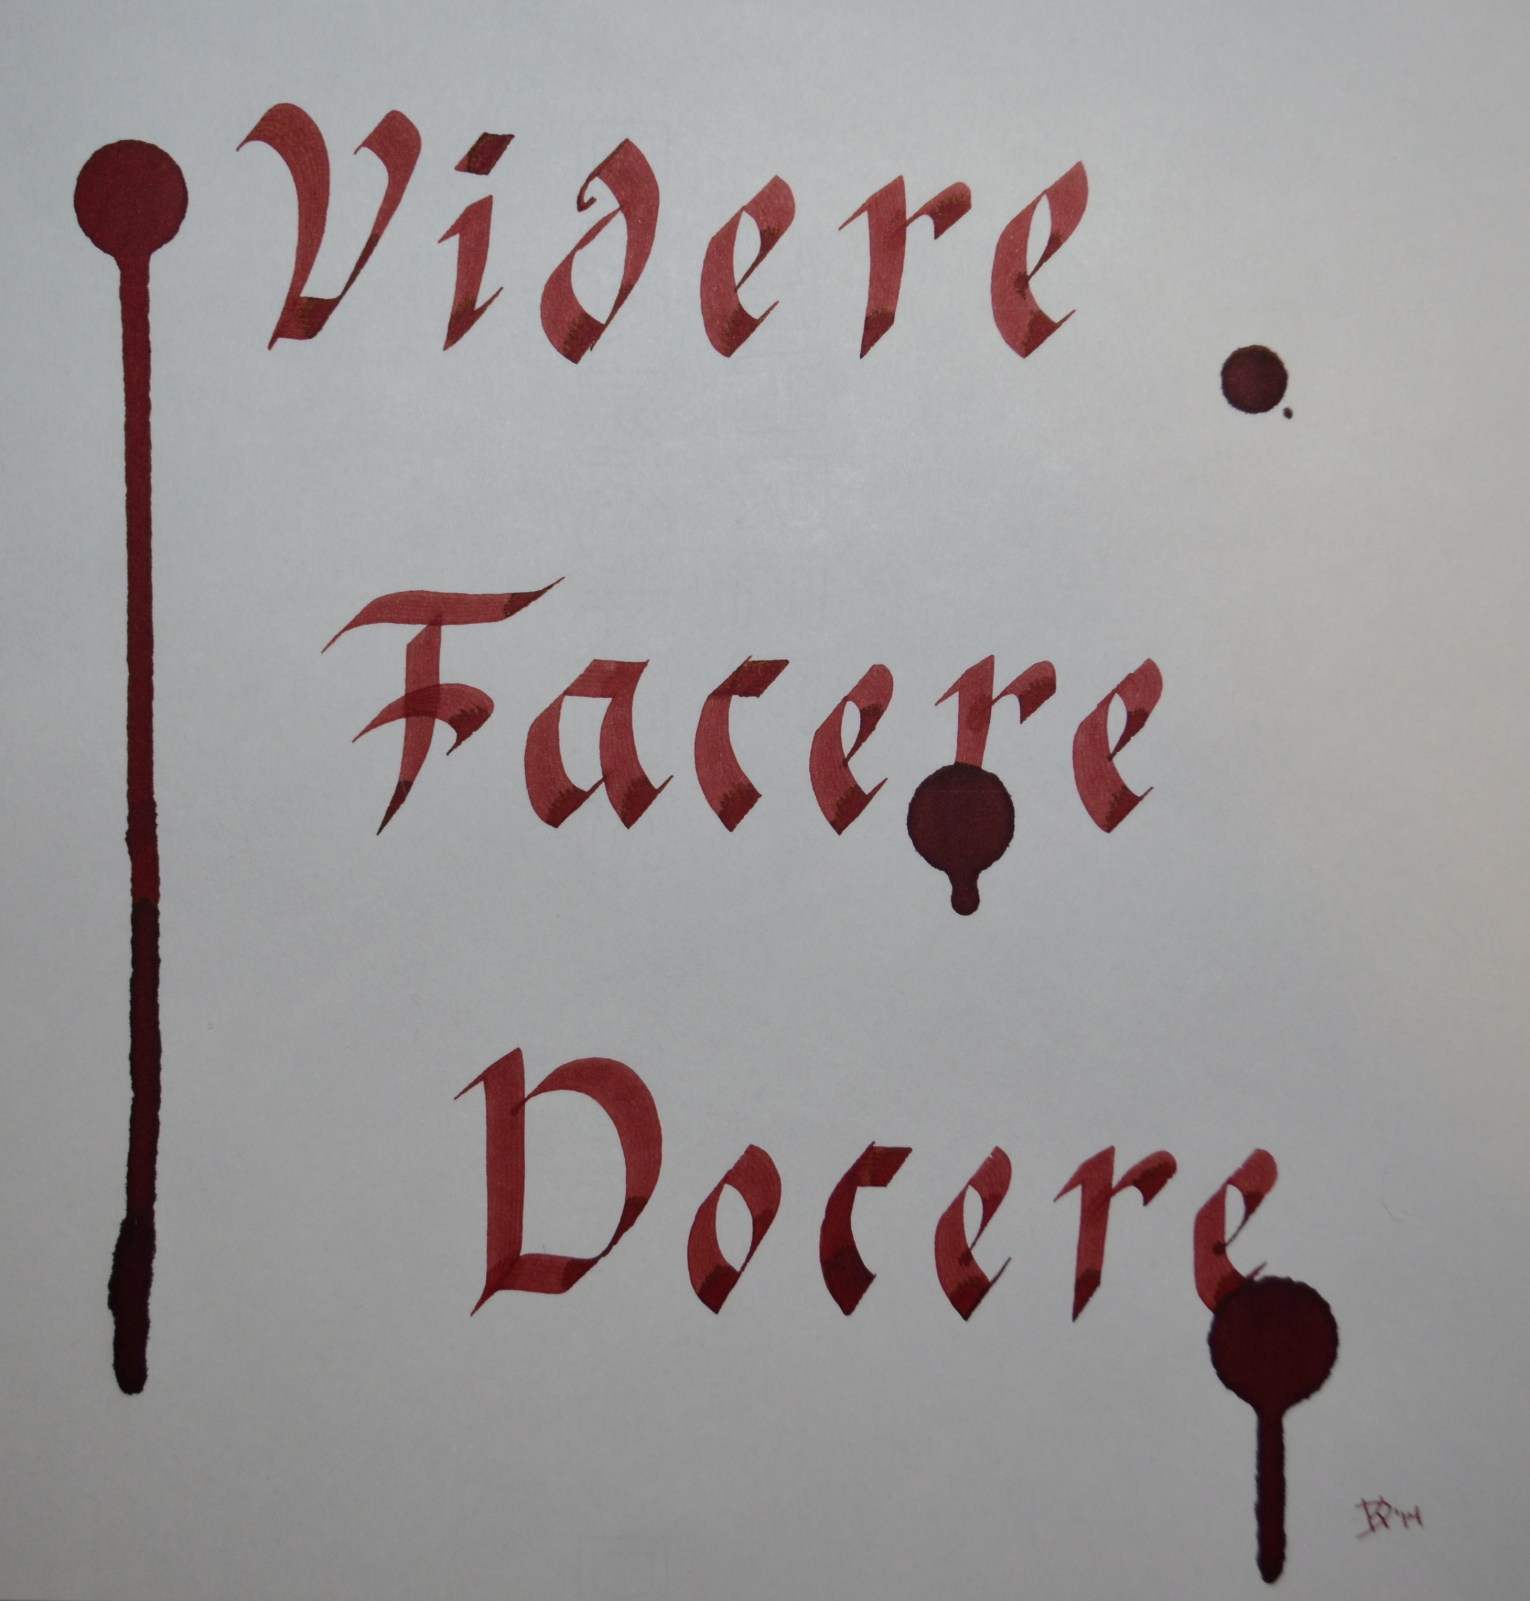 Picture of the latin words Videre Facere Docere